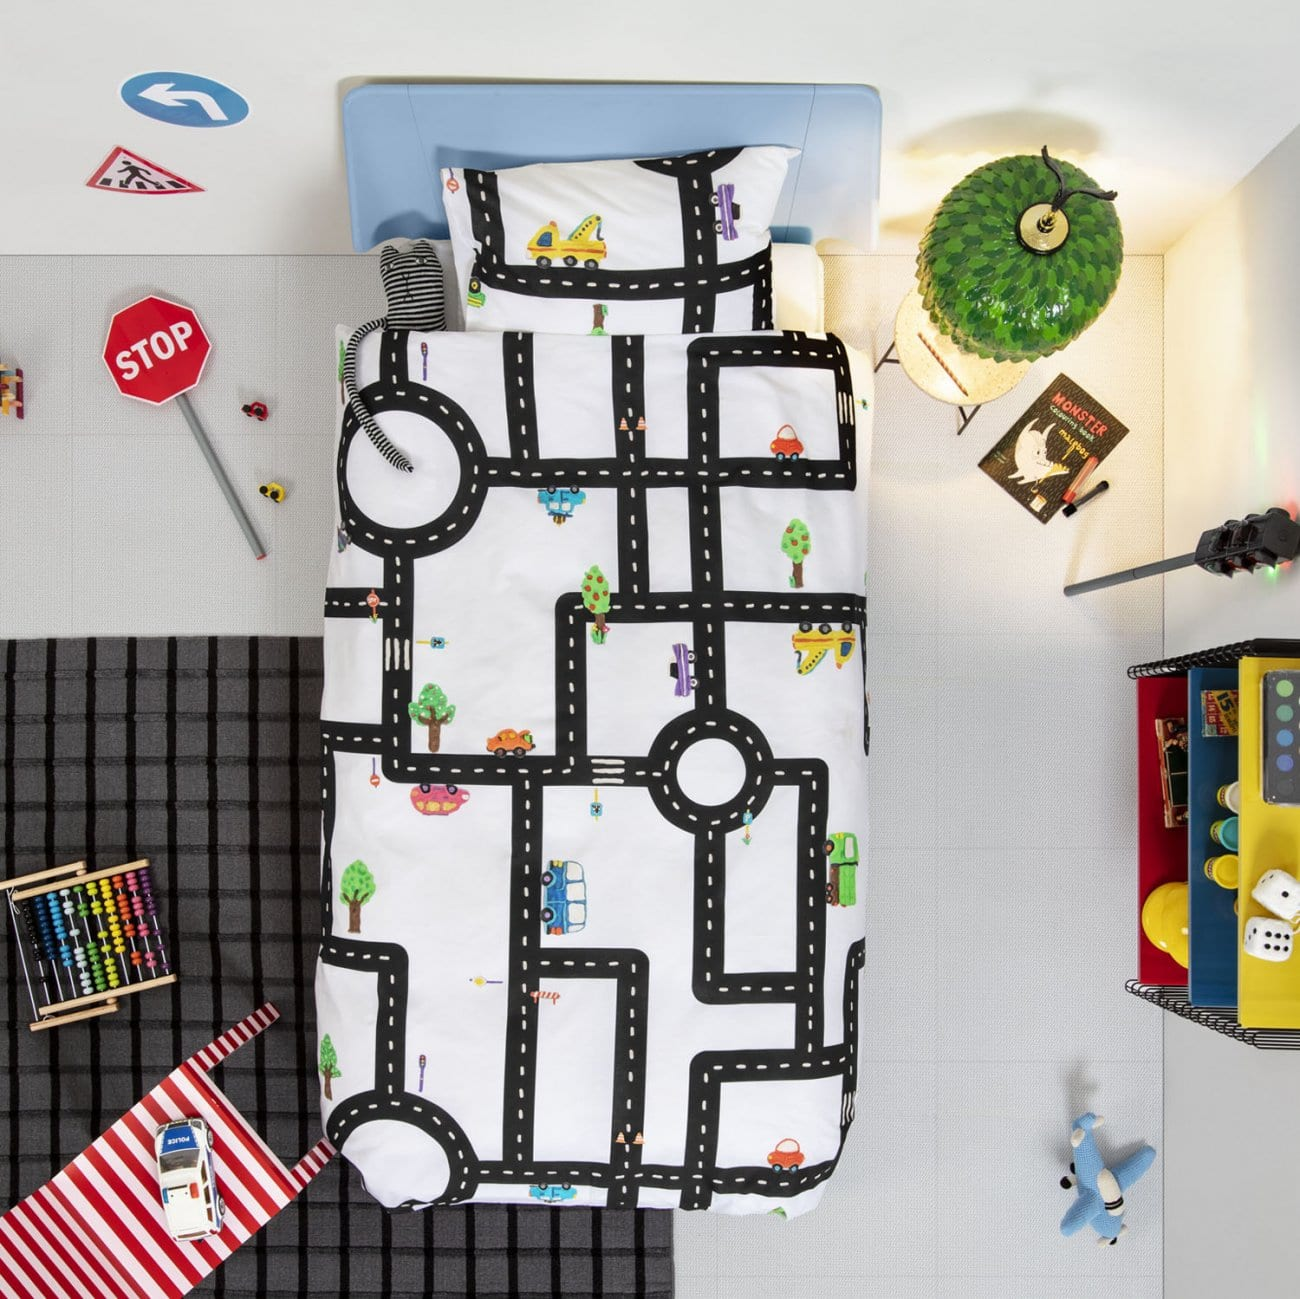 Traffic-Cars-Play-Dough-Clay-Duvet-Set-for-Kids-Children-Pure-Cotton-City-Roads-Bedding-Pillowcase-White